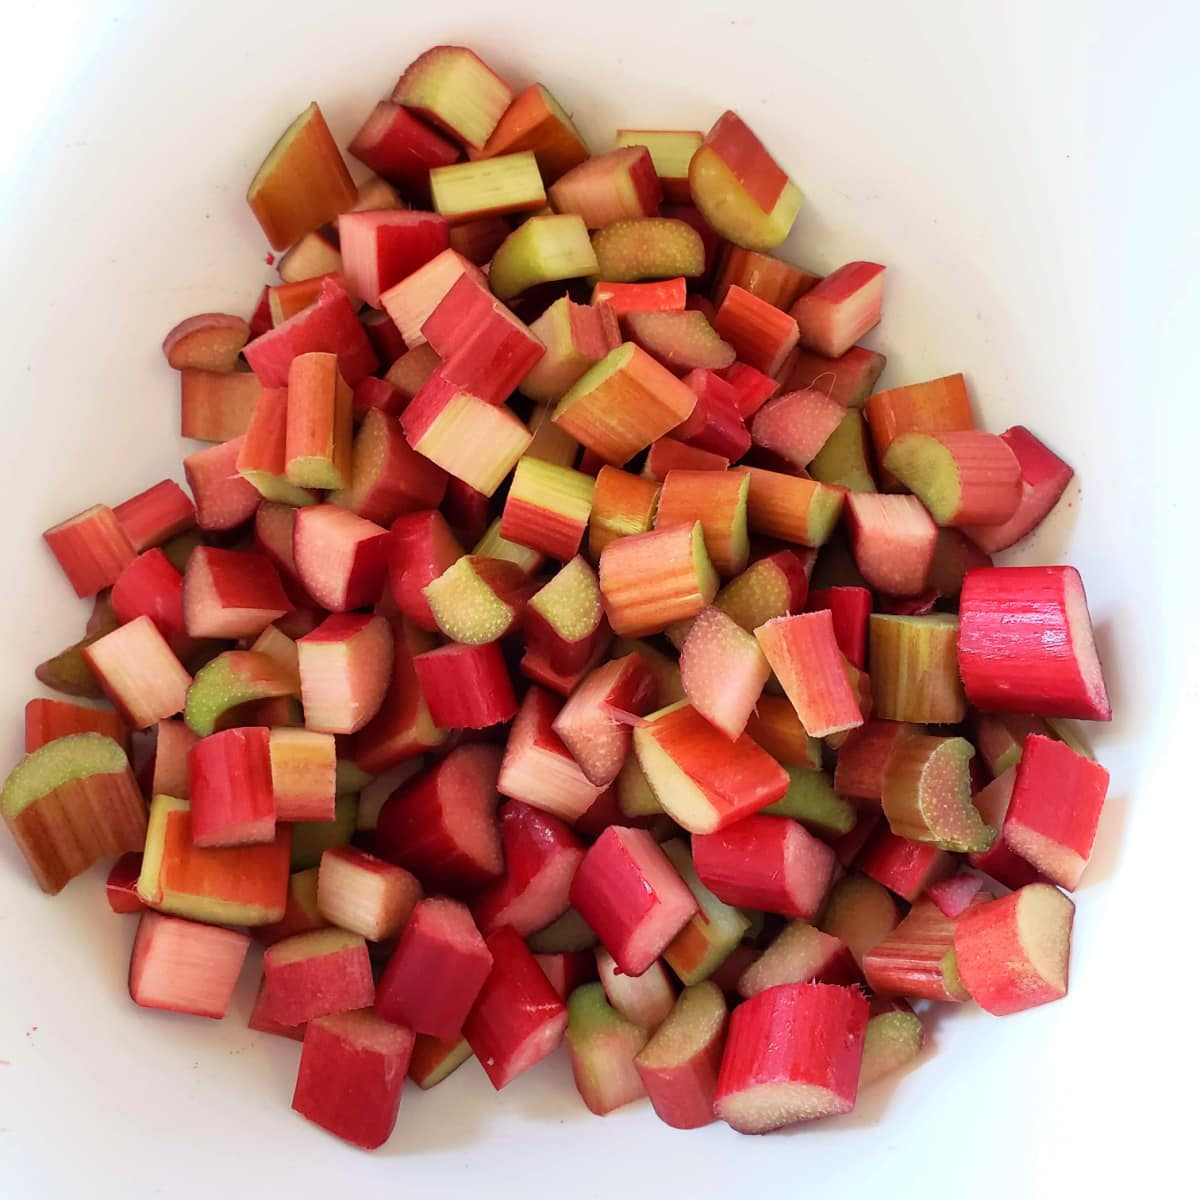 Bright red and green chopped rhubarb in a white mixing bowl on ShockinglyDelicious.com